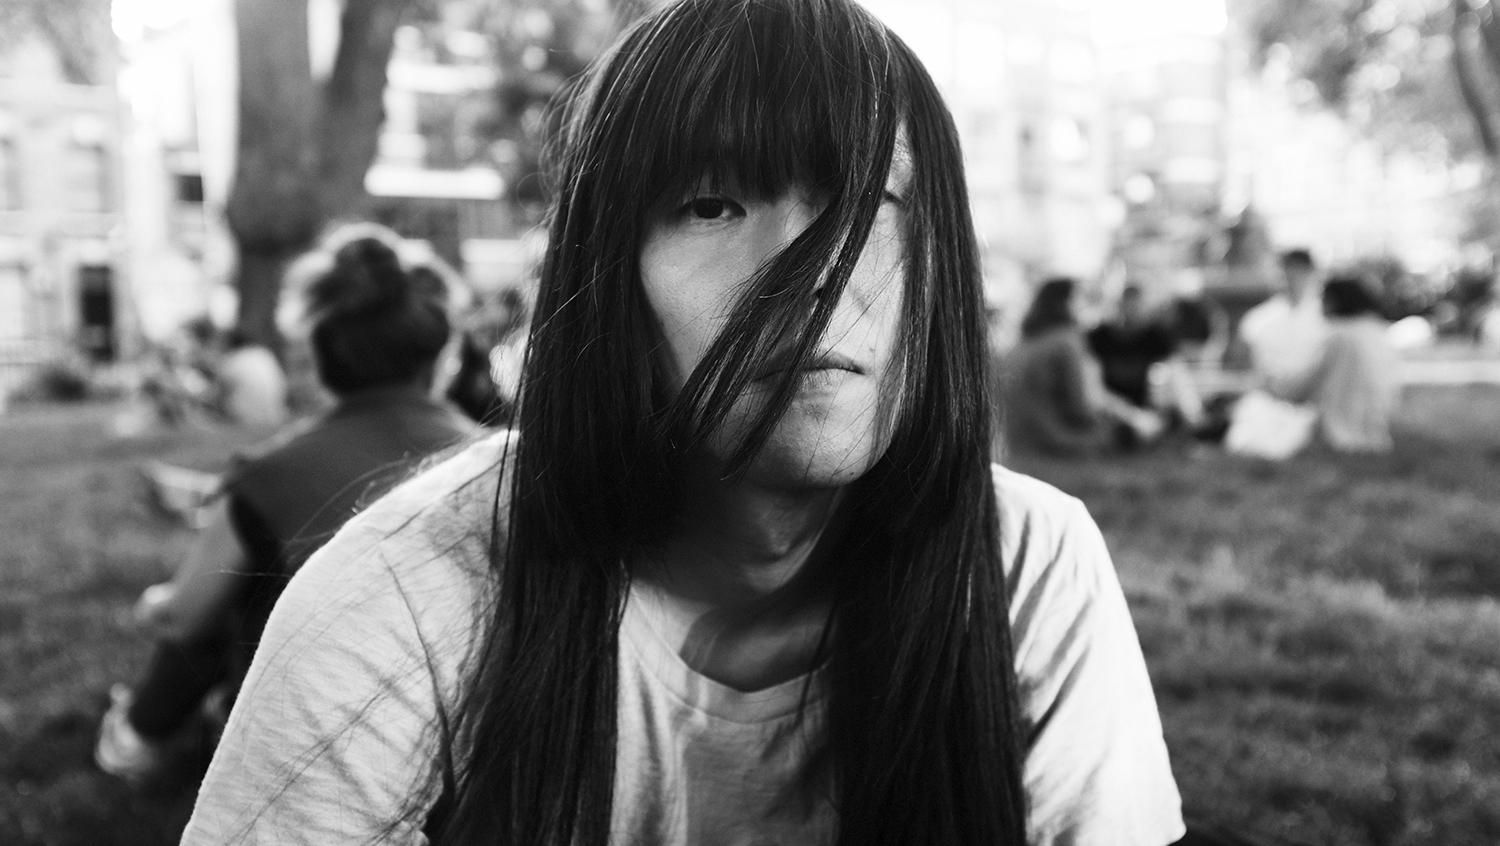 Taigen (Bo Ningen) / May 26 2017 / London, UK.